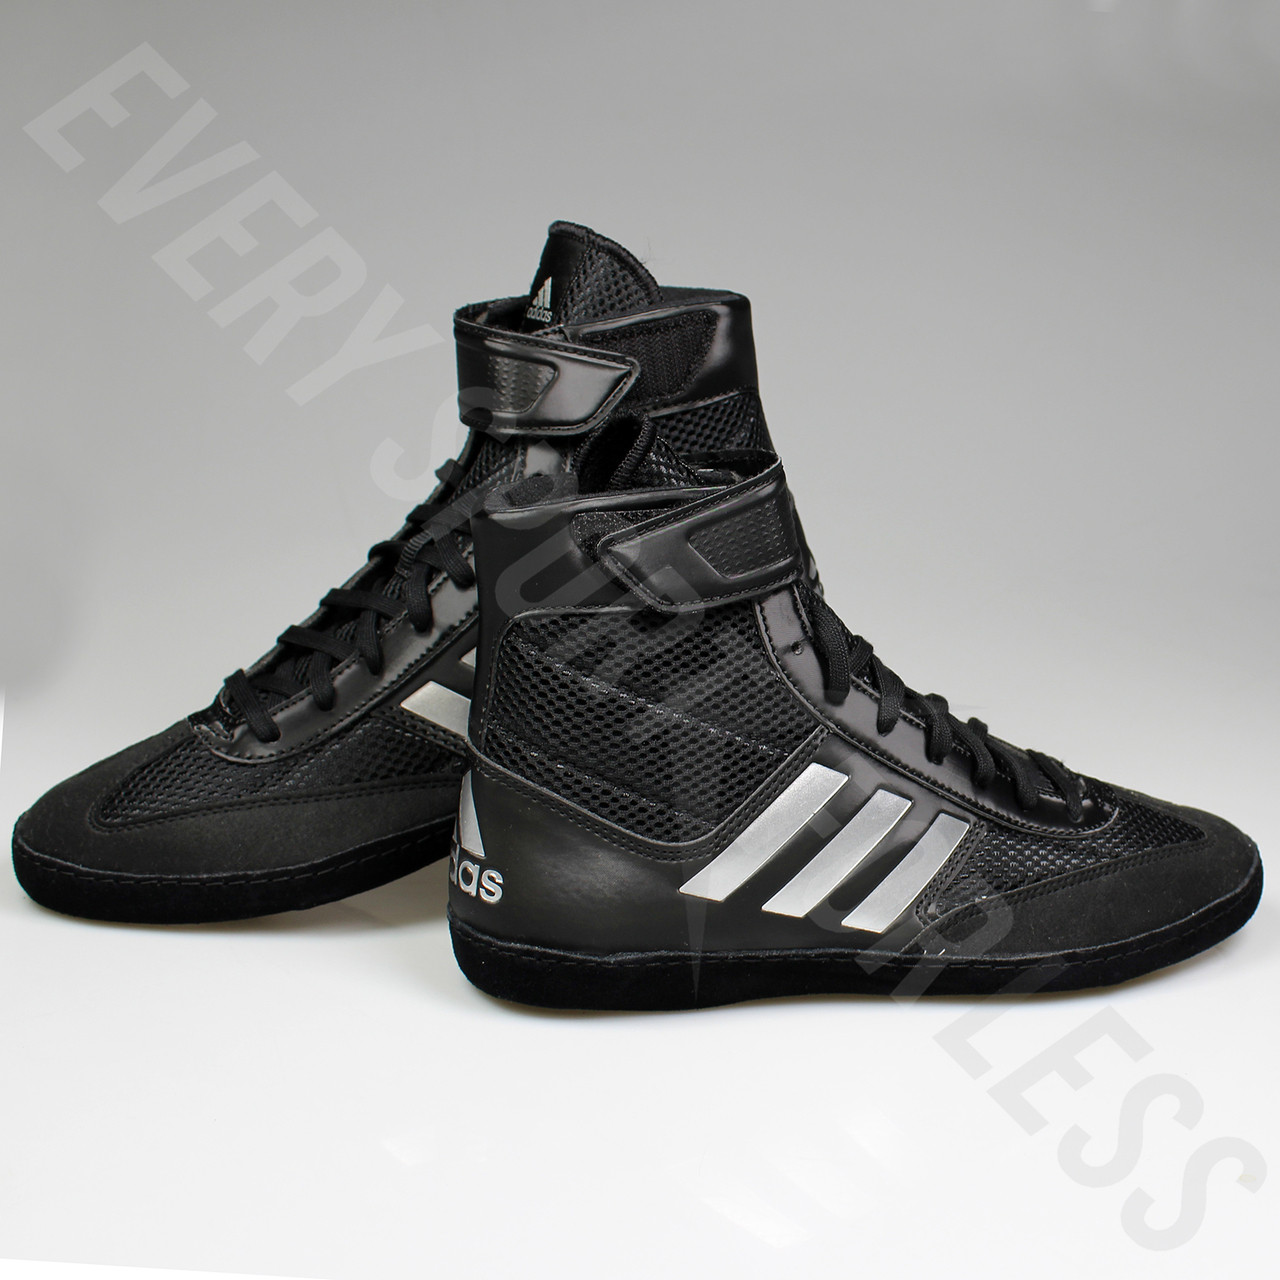 ... Adidas Combat Speed 5 Mens Wrestling Shoes BA8007 - Black   Silver ... 5dd08729a